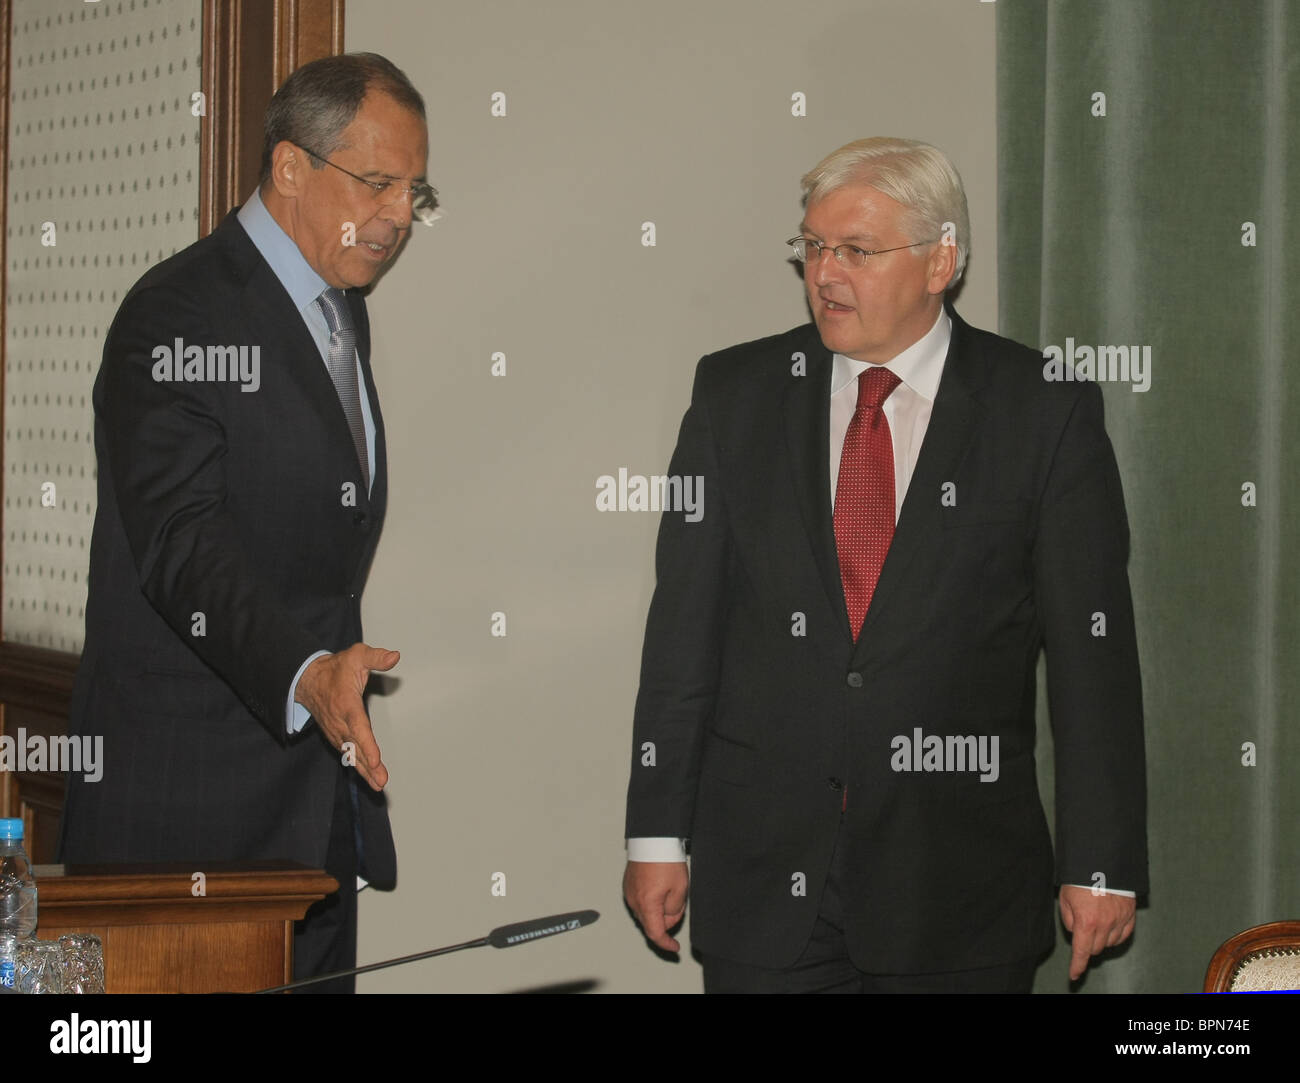 Russian and German Foreign Ministers meet for talks - Stock Image